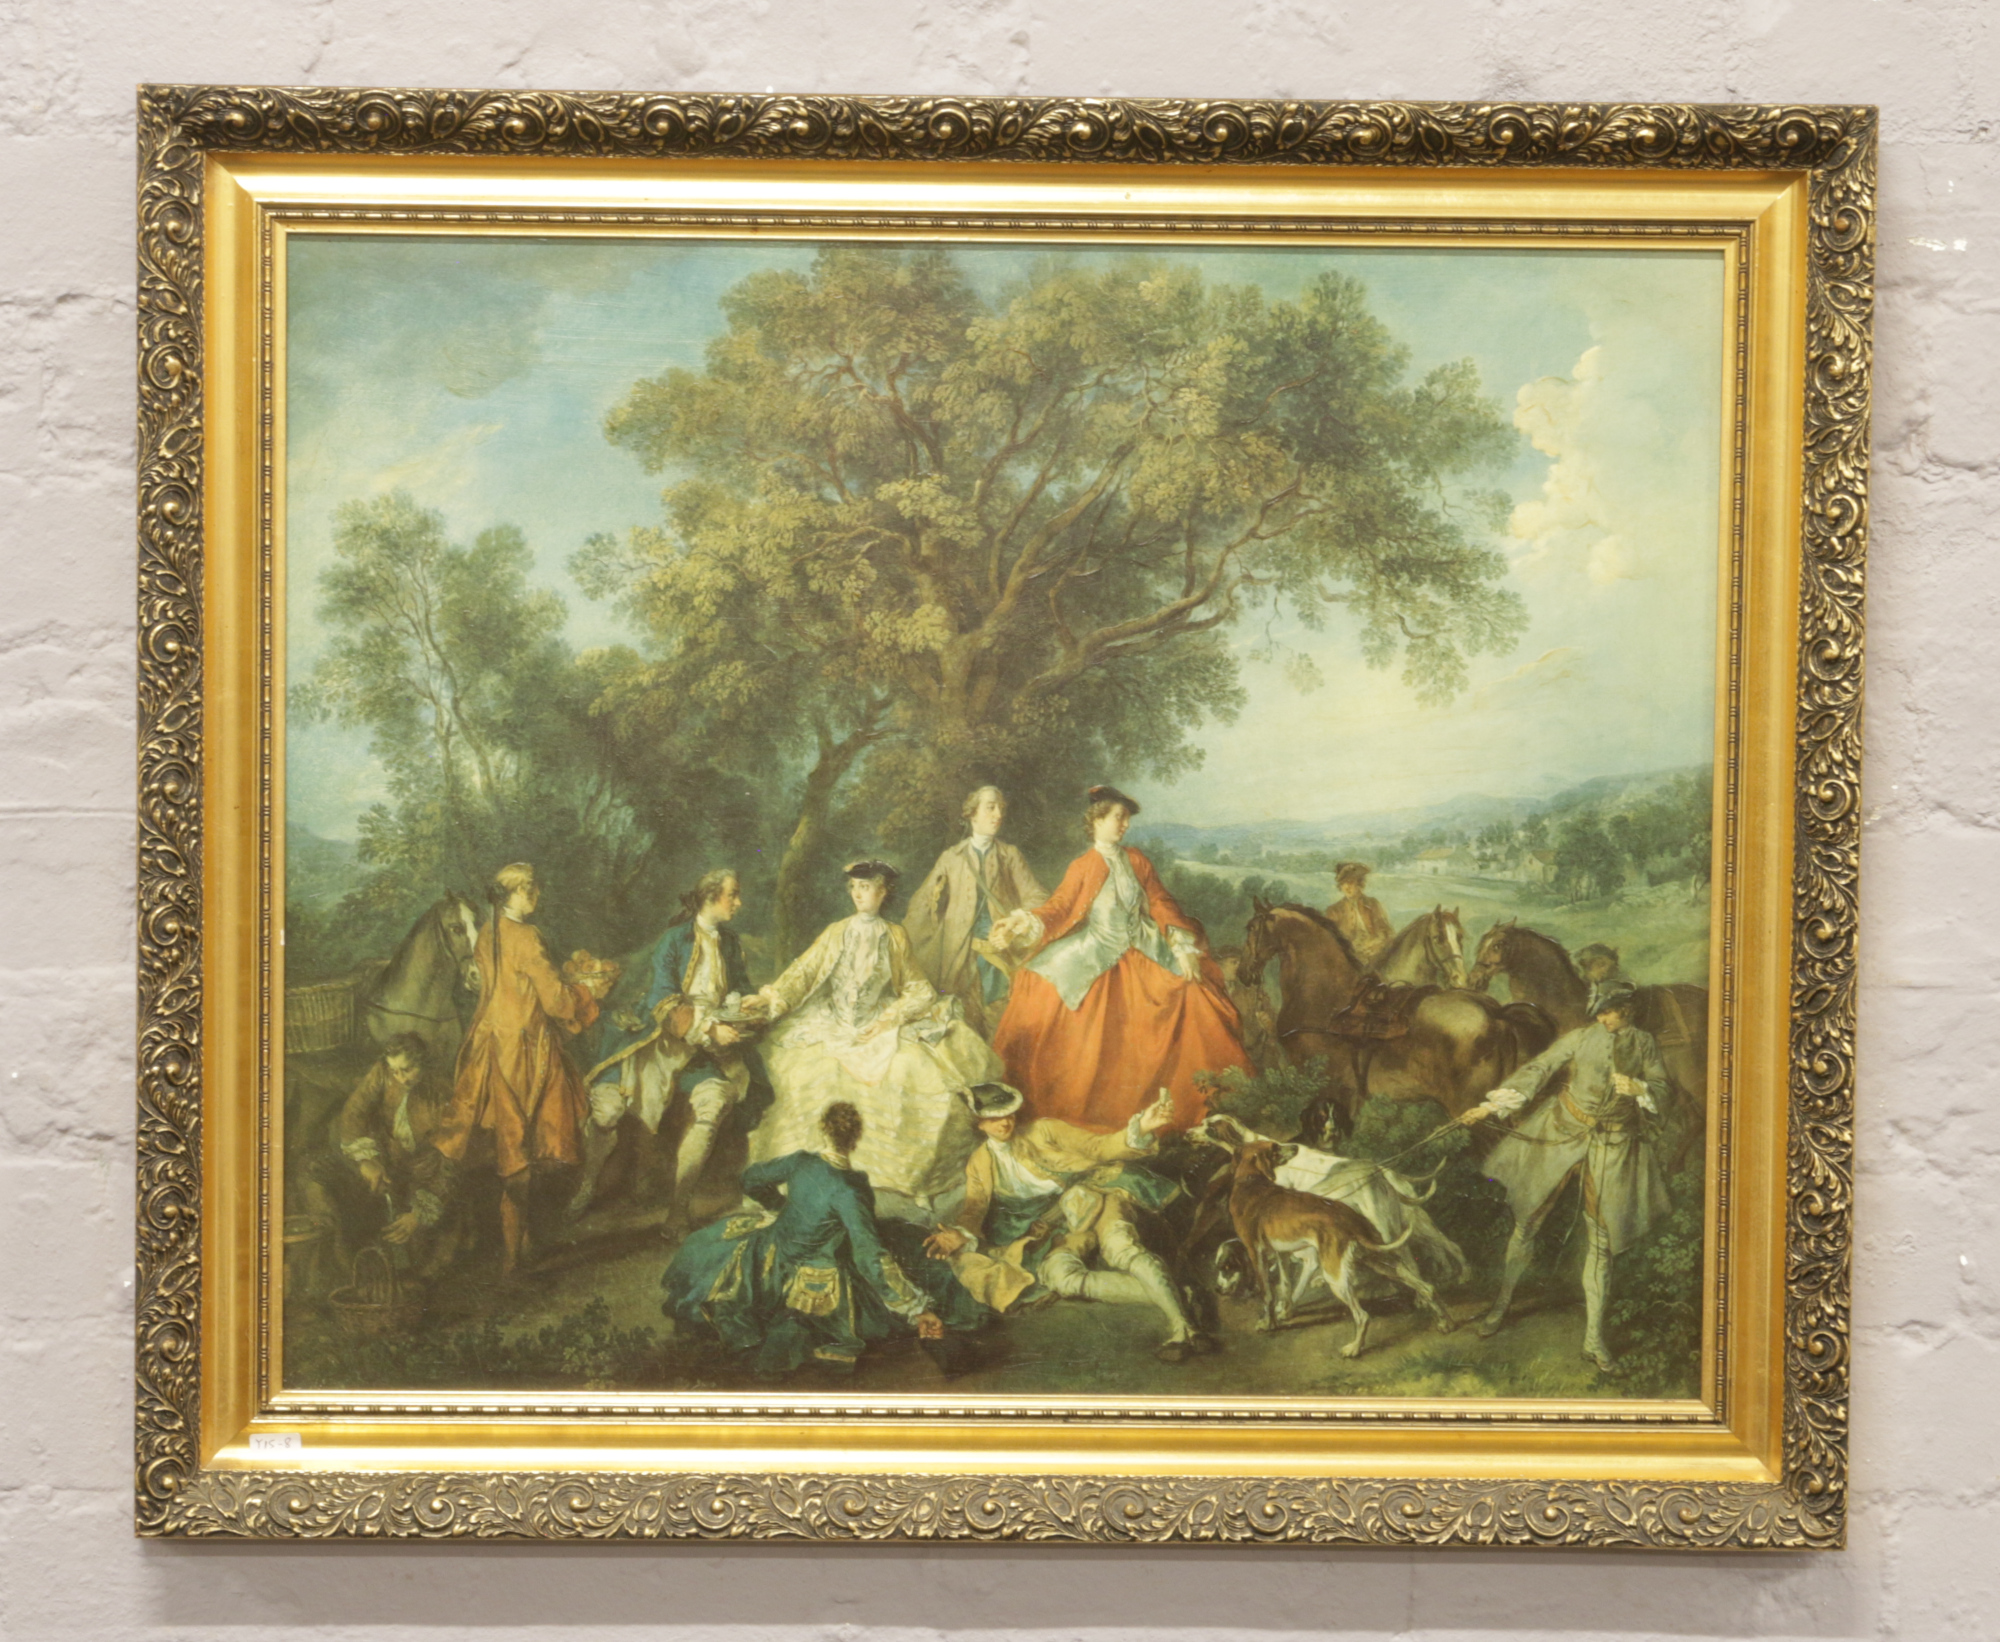 Lot 300 - A gilt framed oilograph of figures in period dress in country landscape.